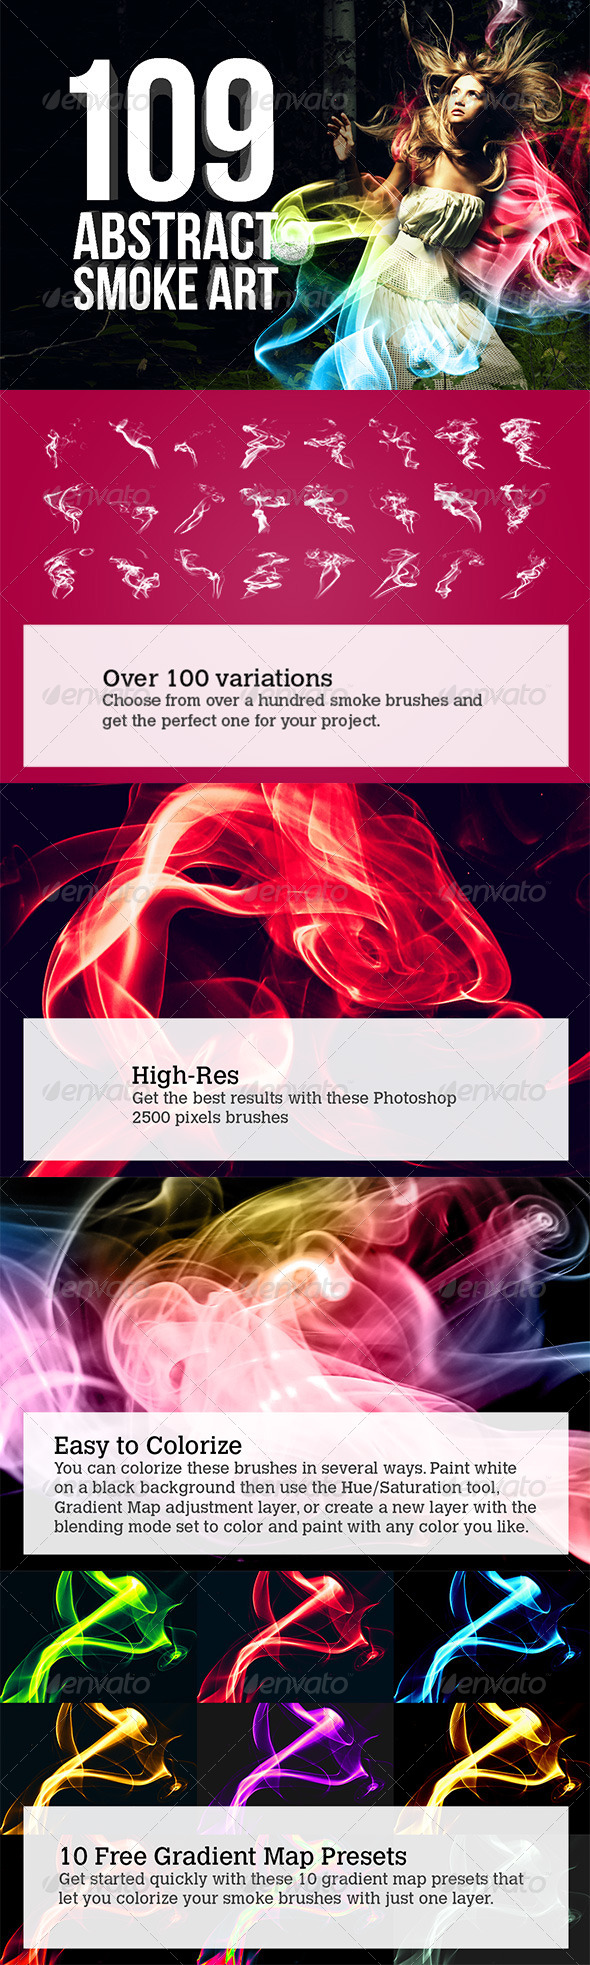 GraphicRiver 109 Abstract Smoke Art 4321742